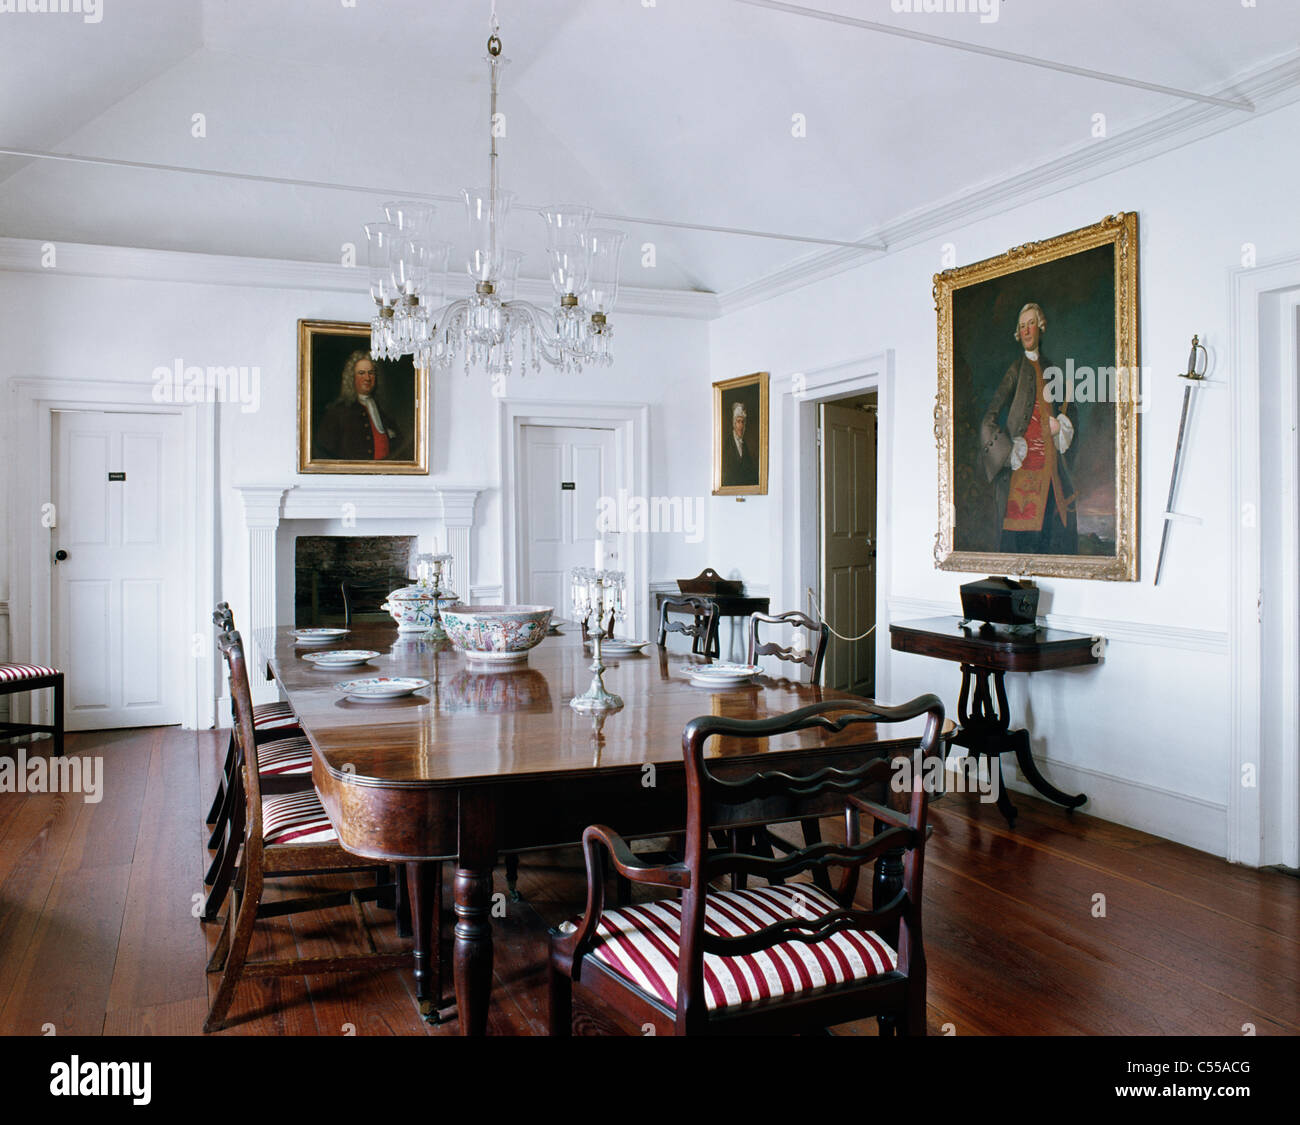 Dining Room Henry Tucker House St. George Bermuda